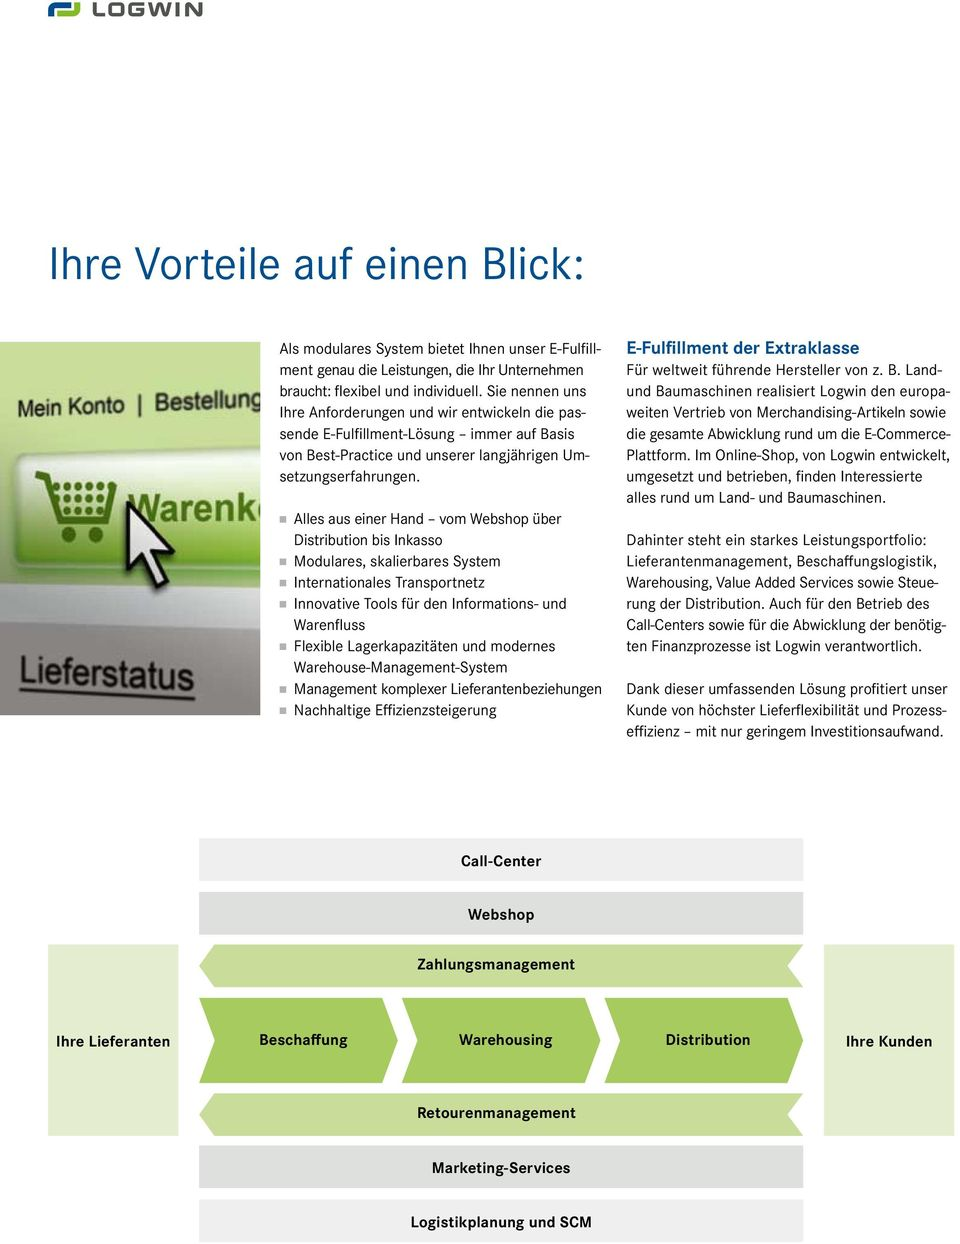 Alles aus einer Hand vom Webshop über Distribution bis Inkasso Modulares, skalierbares System Internationales Transportnetz Innovative Tools für den Informations- und Warenfluss Flexible